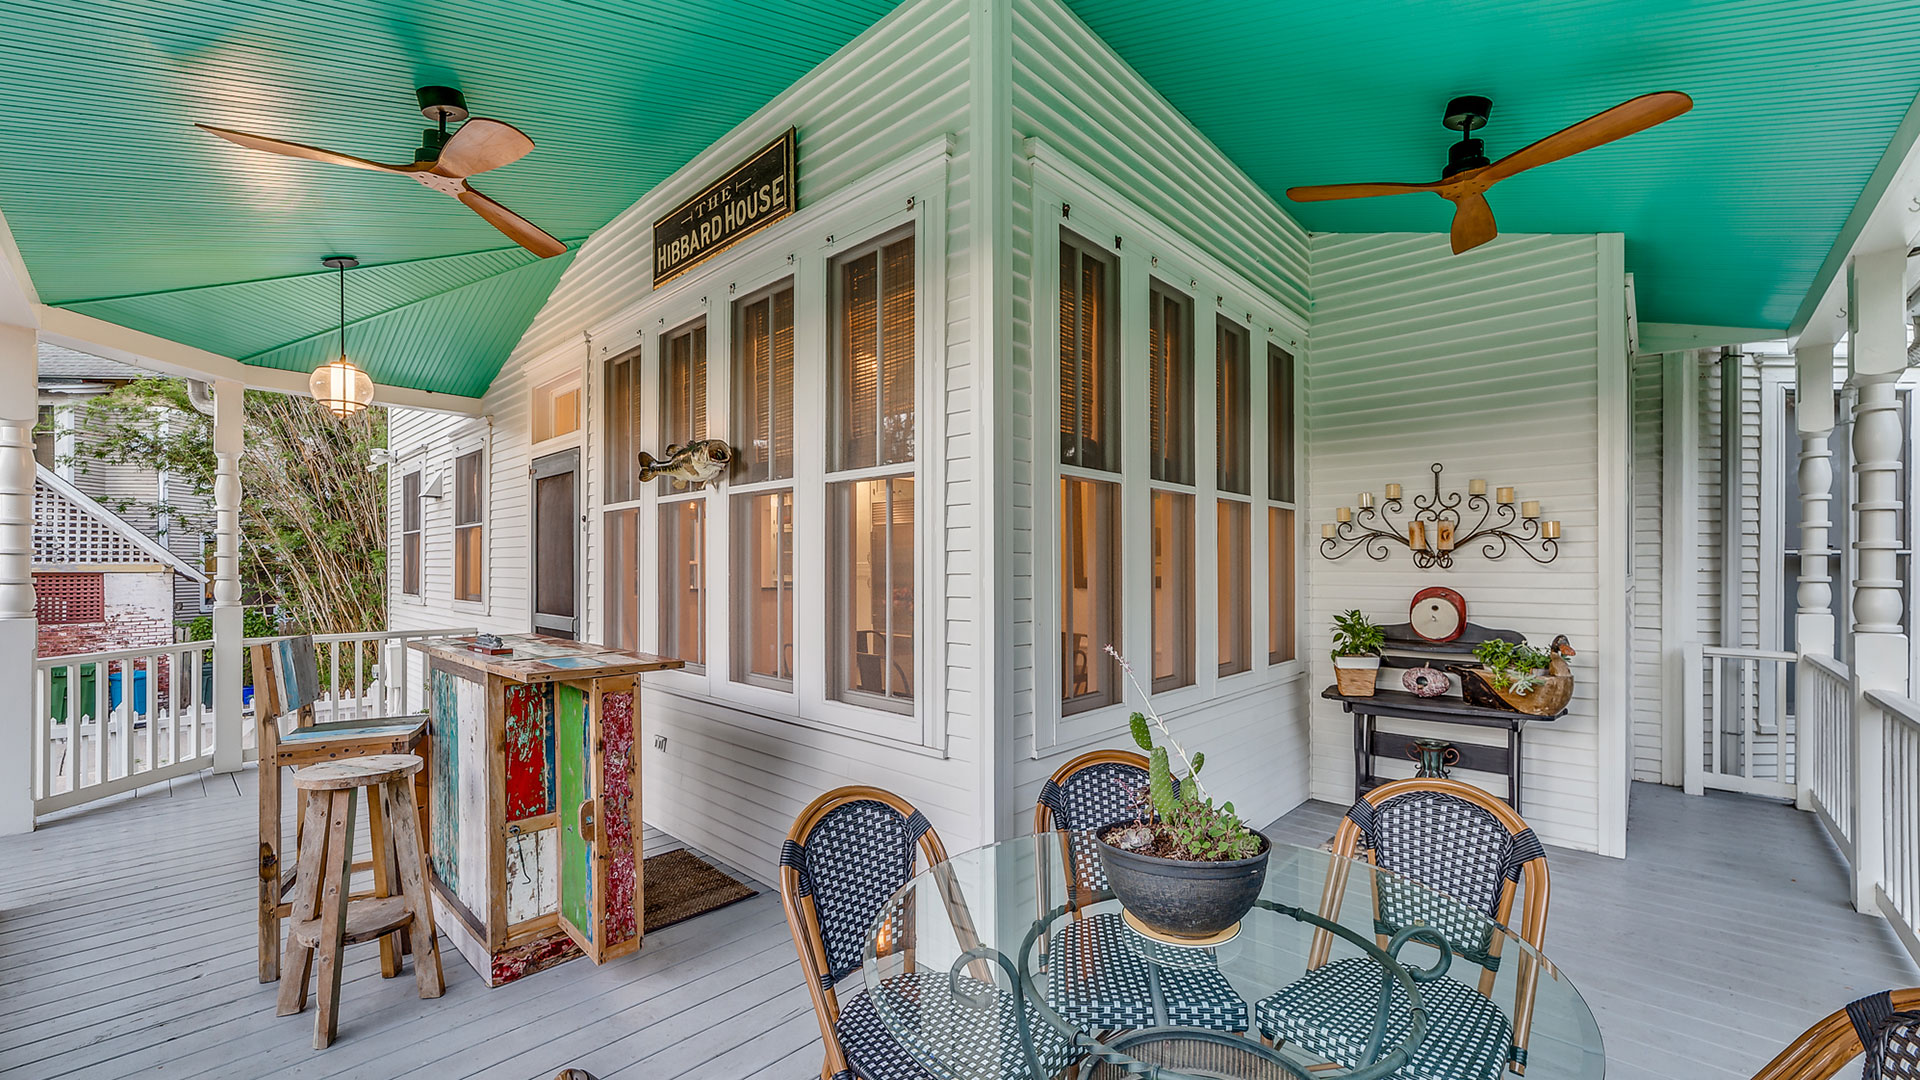 Hibbard House St Augustine Porch Dining